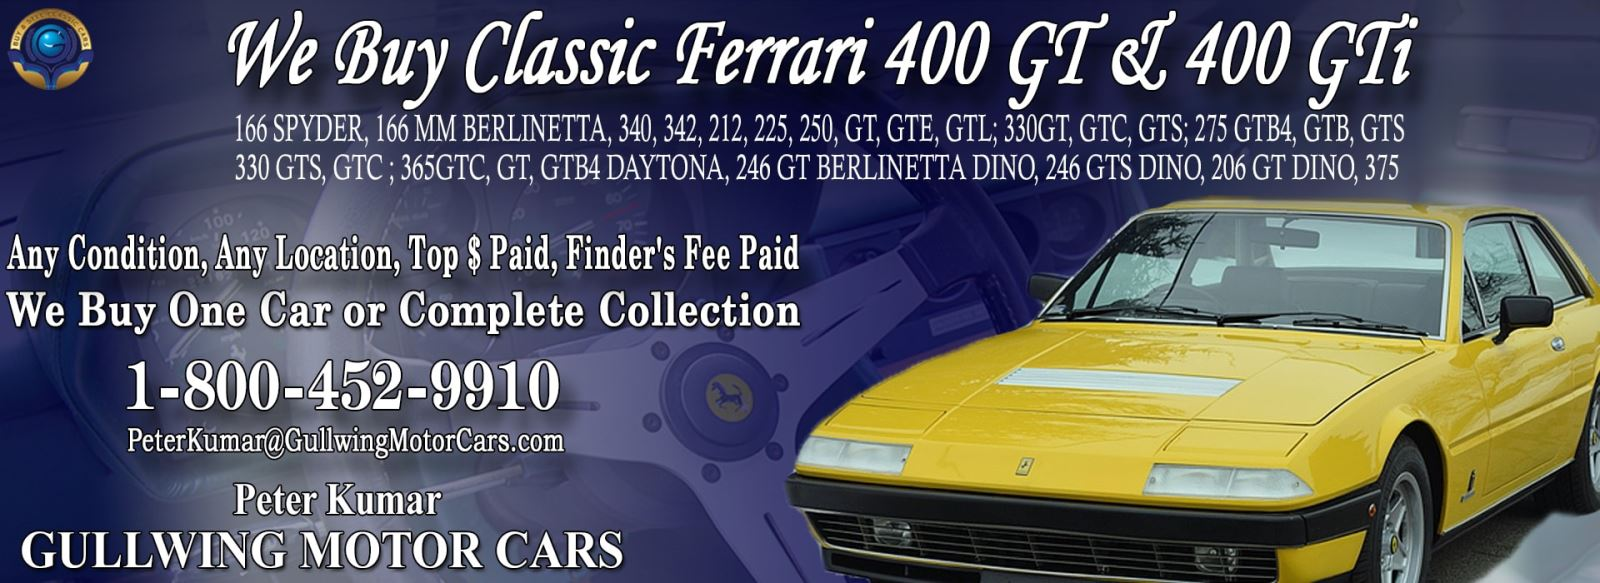 Classic Ferrari 400 GT 400 GTi for sale, we buy vintage Ferrari 400GT 400GTi. Call Peter Kumar. Gullwing Motor